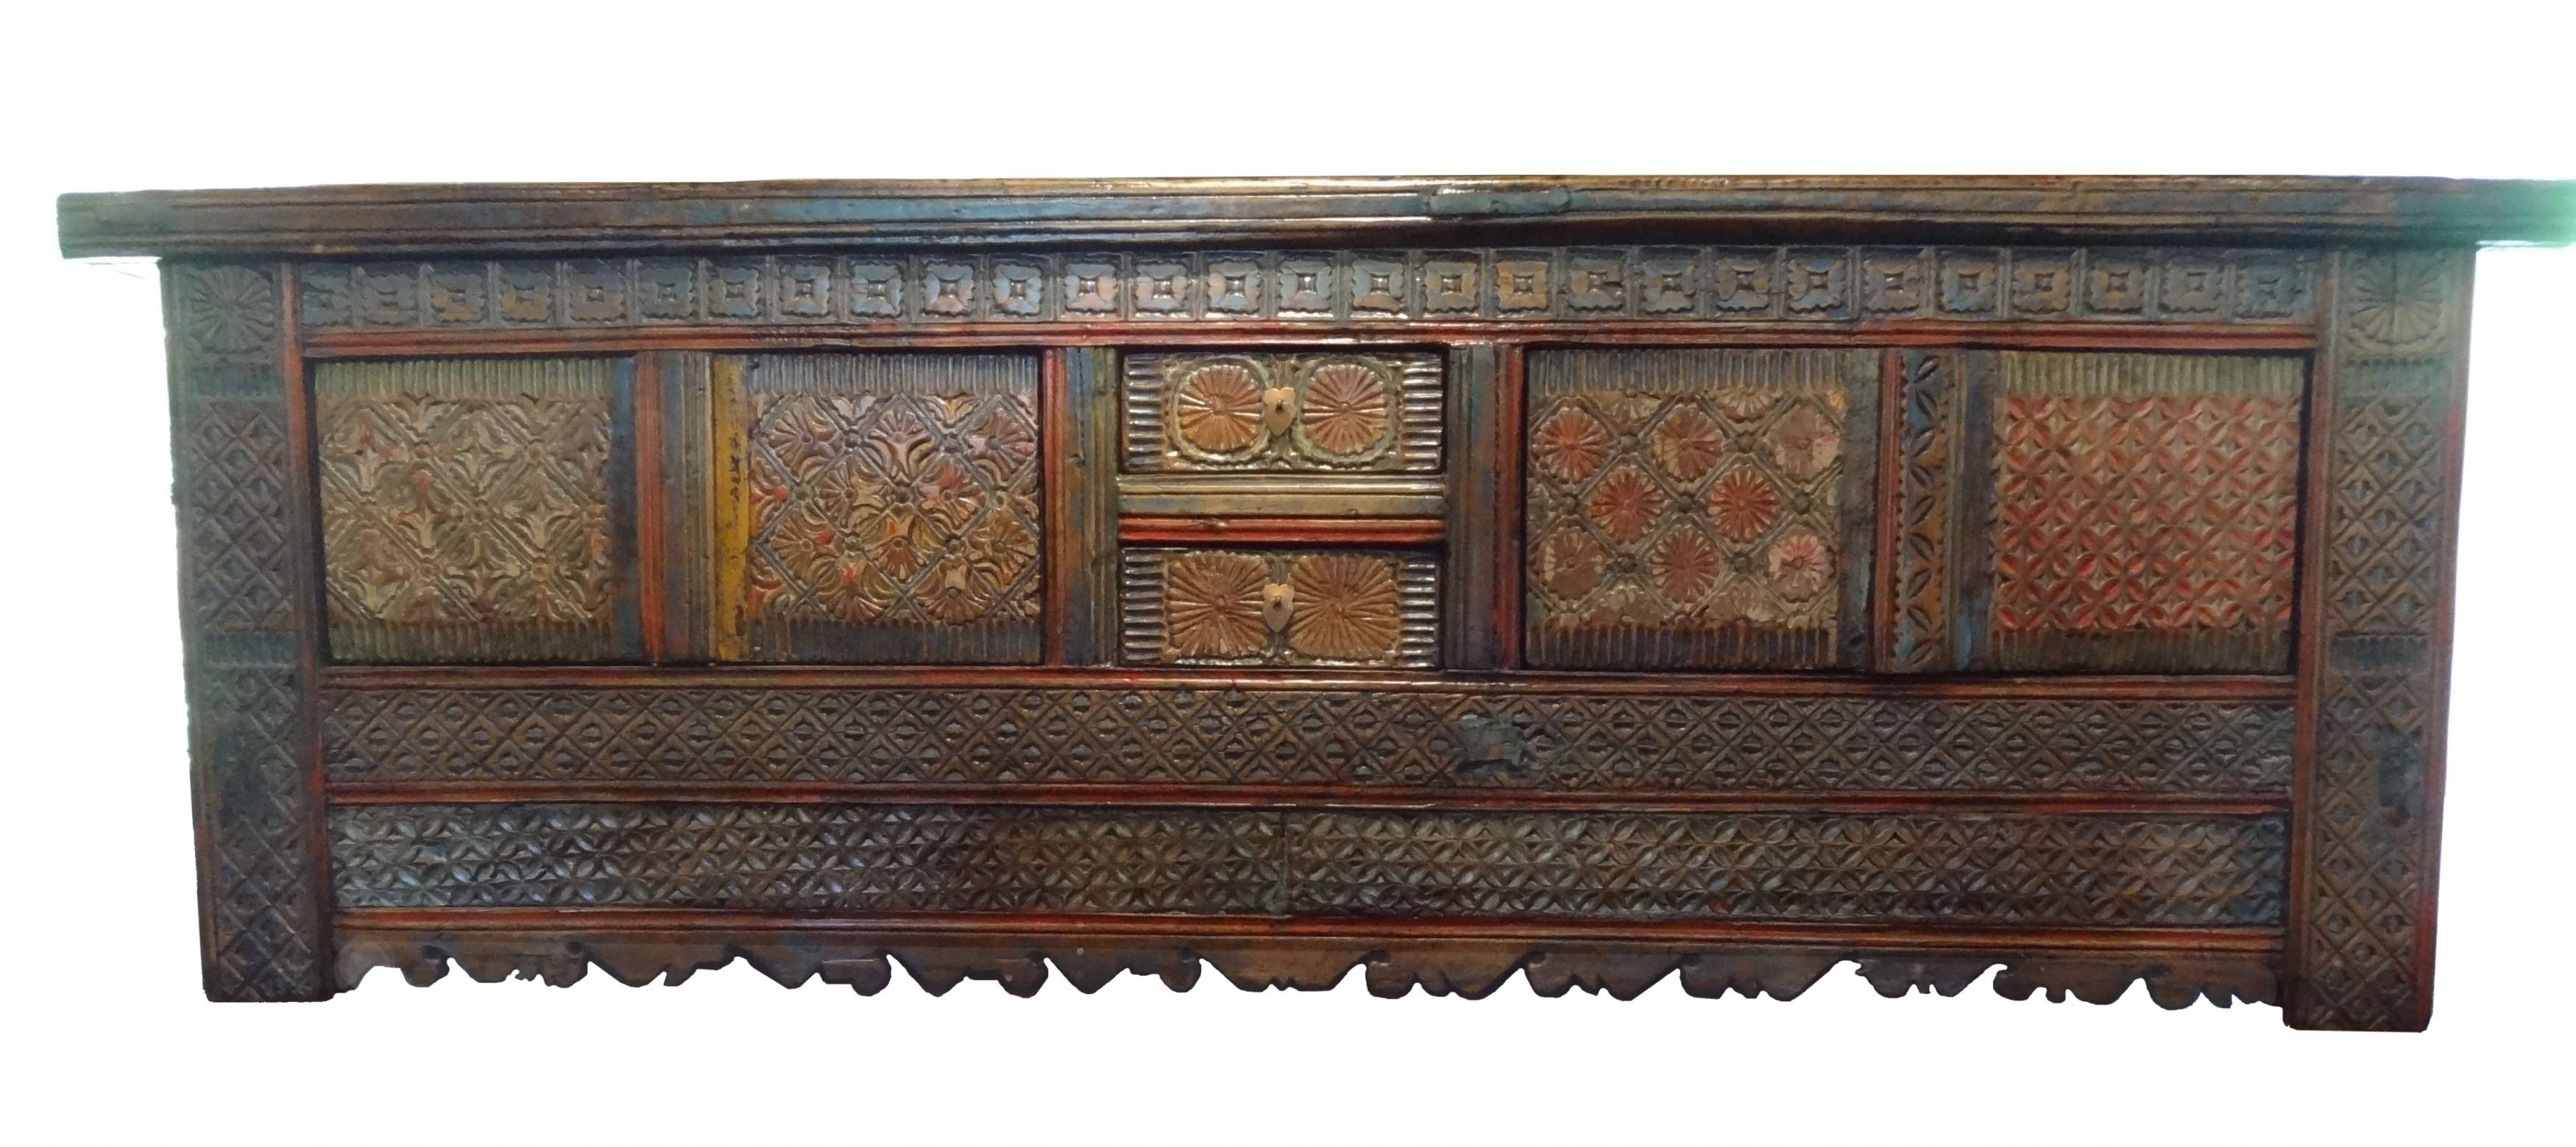 Antique Sideboards | Gallery Categories | Aptos Cruz In Antique Sideboards (View 5 of 15)